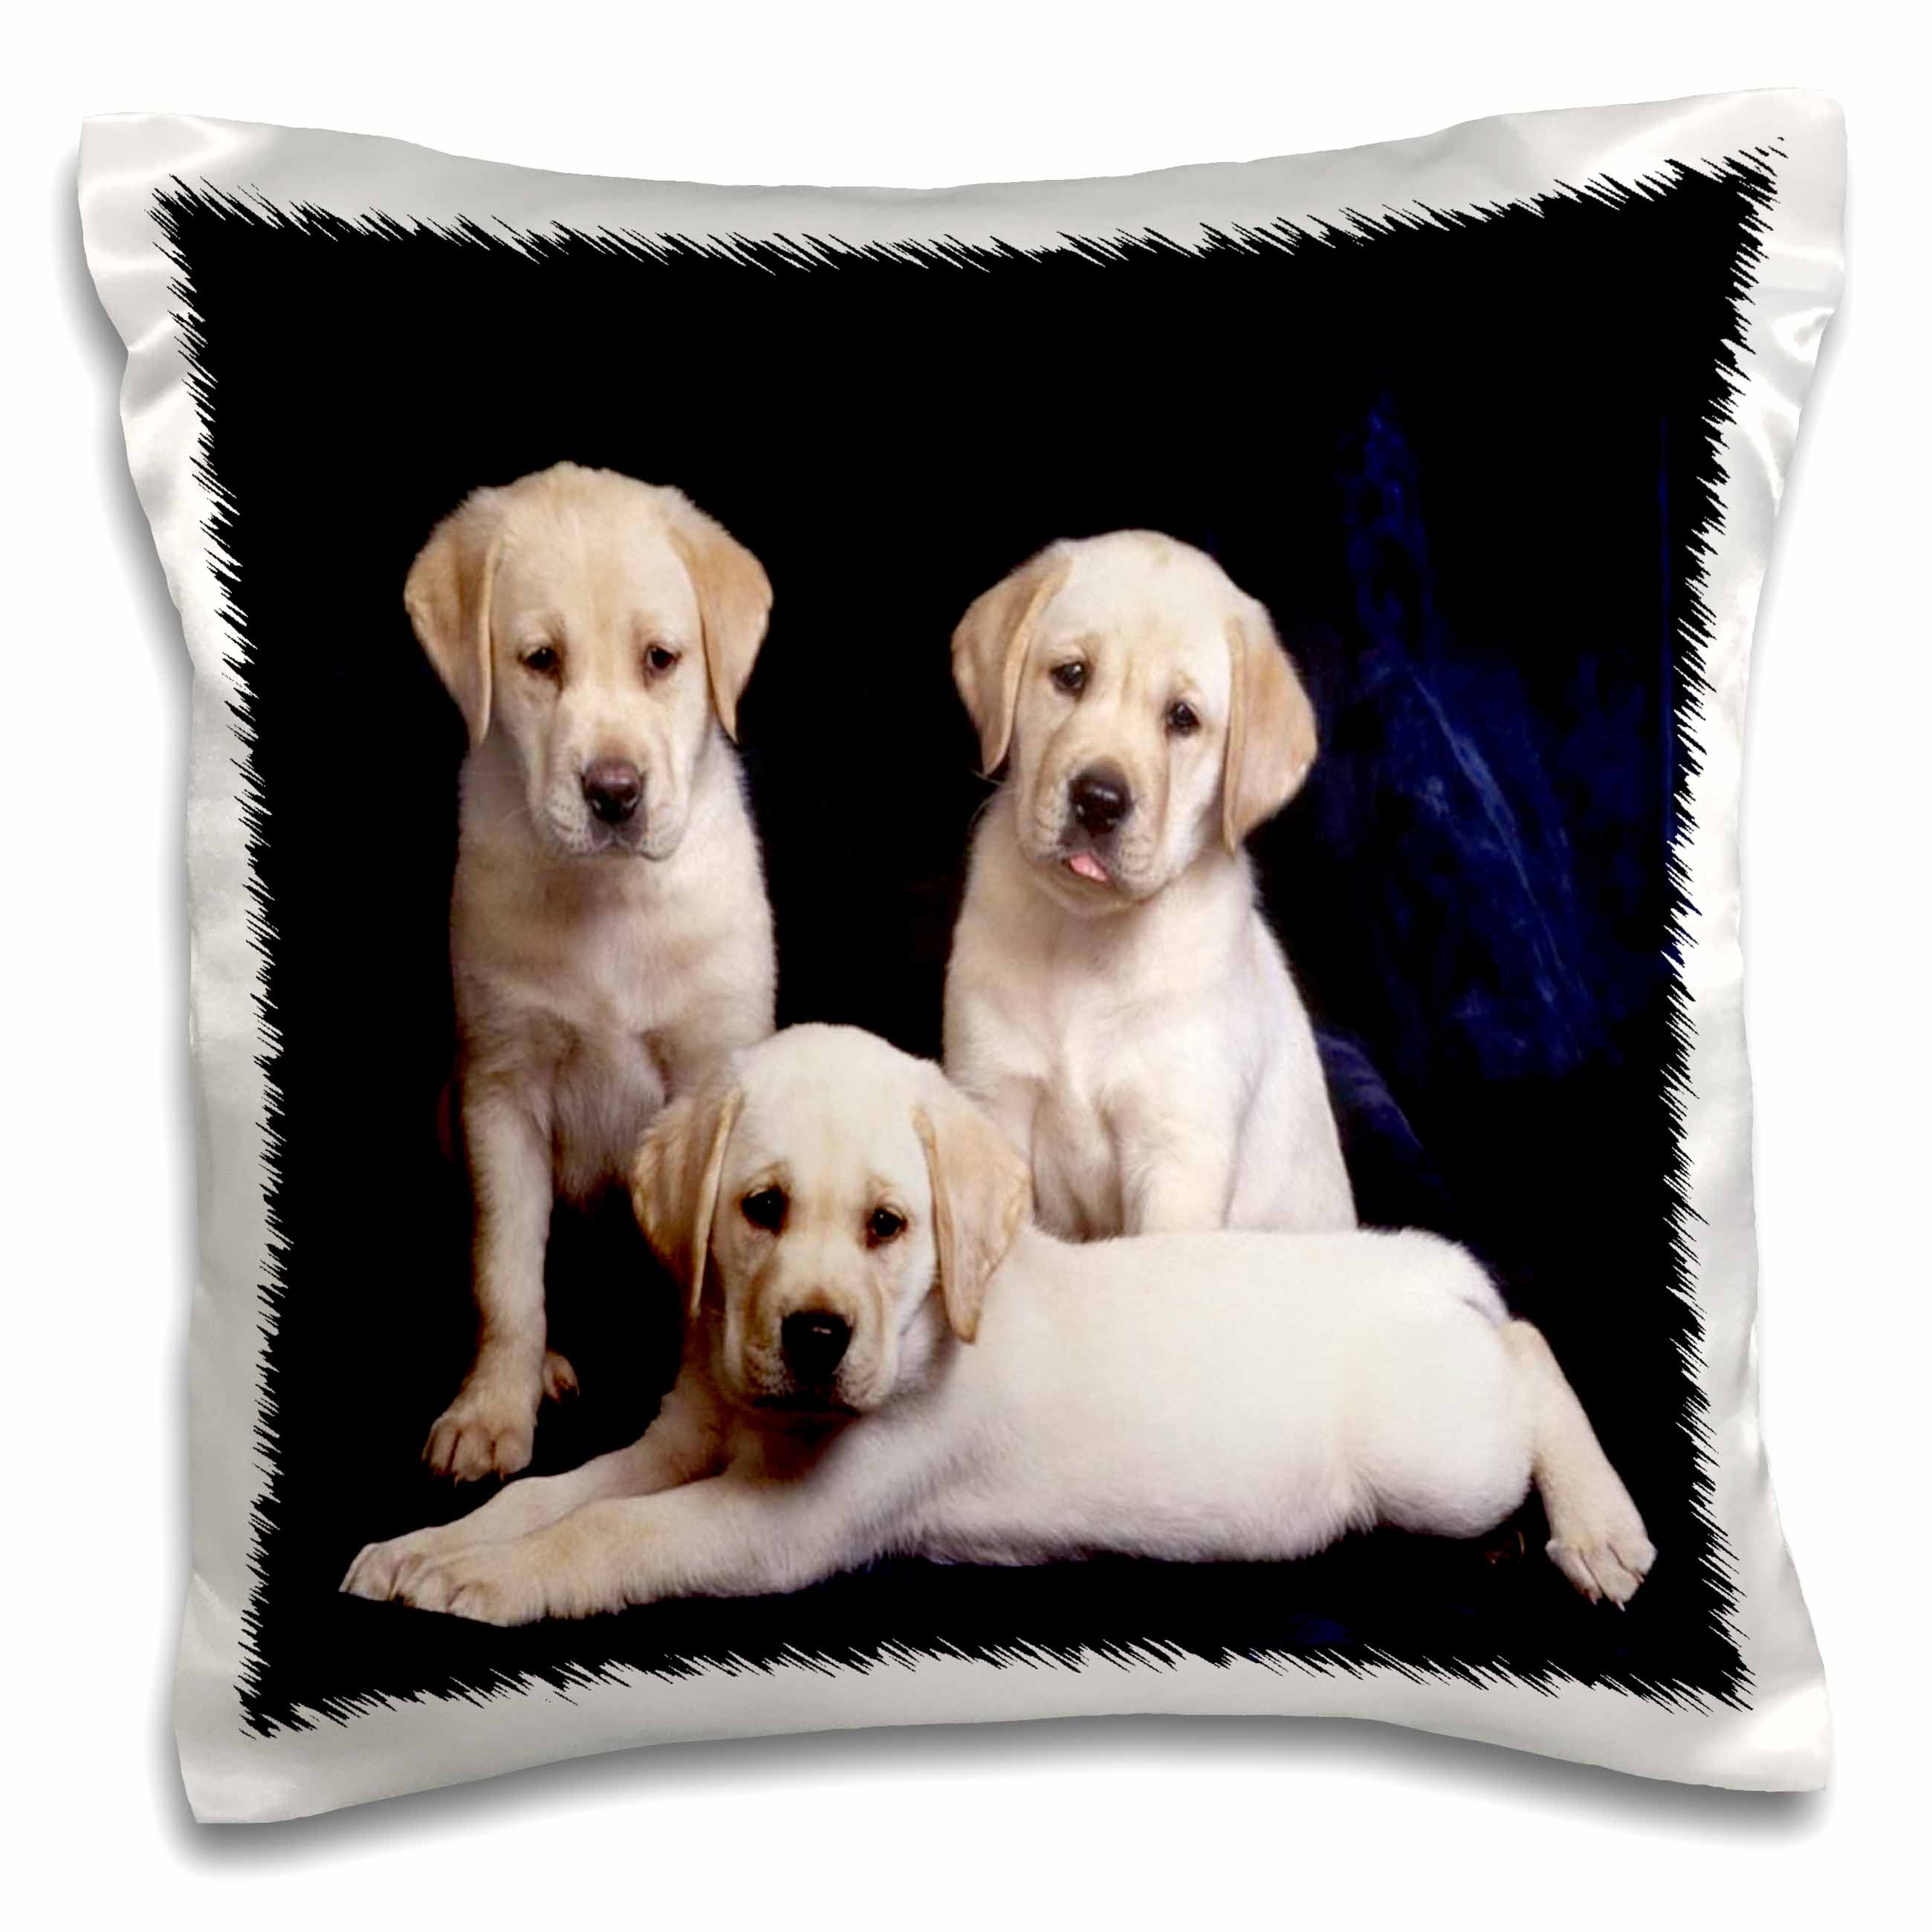 3dRose 3 Yellow Labs Portrait, Pillow Case, 16 by 16-inch